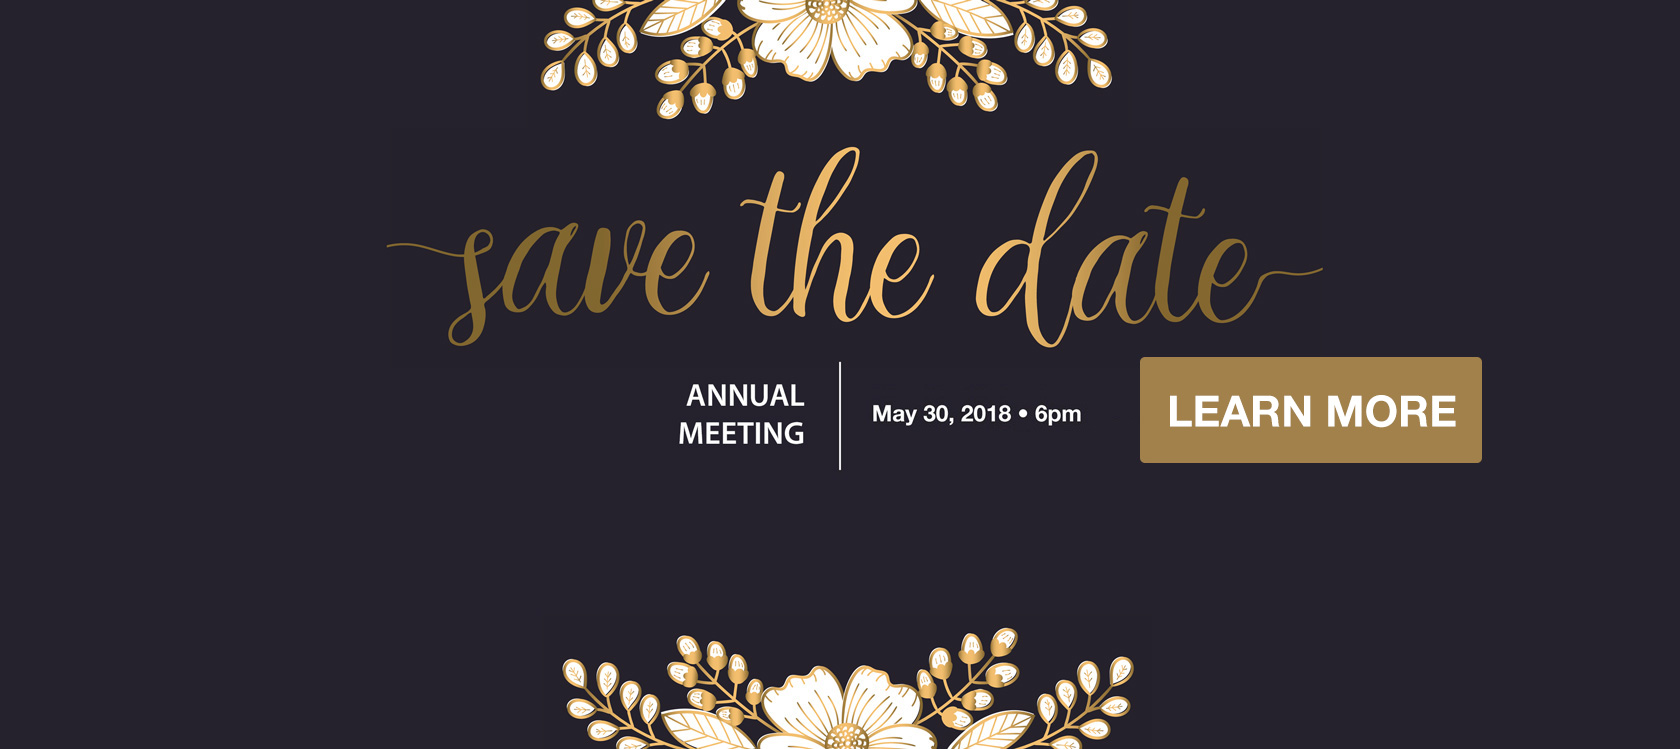 2018 Annual Meeting Save the Date